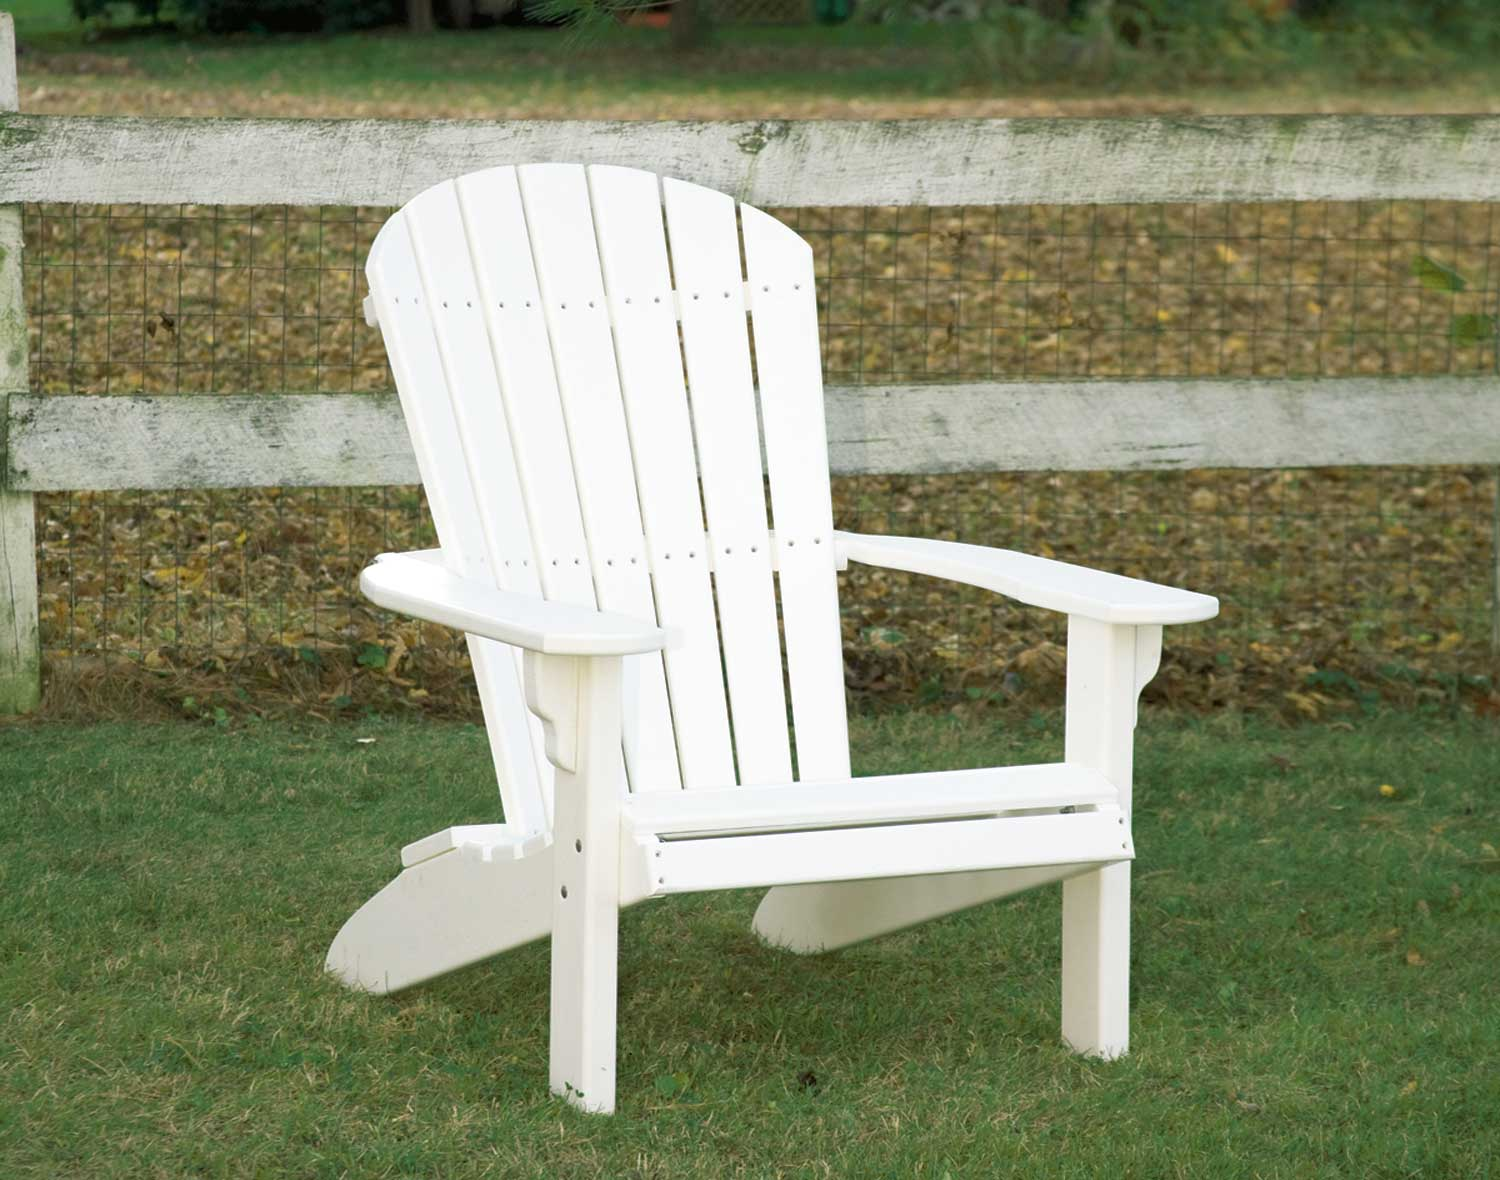 charming Teak Adirondack Chairs in white for patio decor ideas